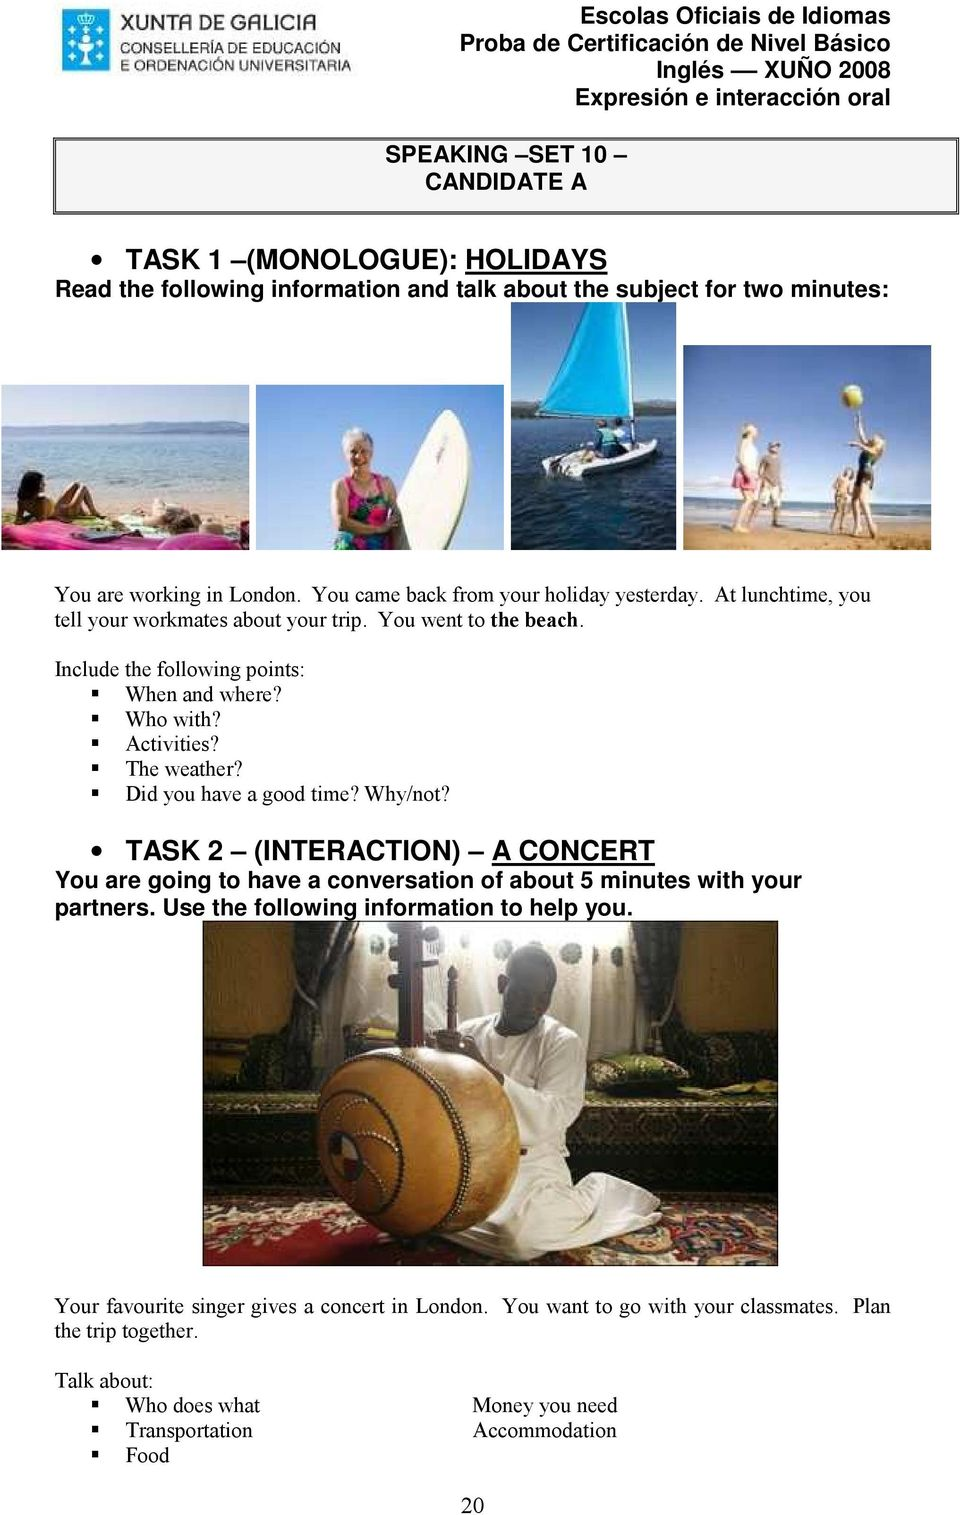 Did you have a good time? Why/not? TASK 2 (INTERACTION) A CONCERT partners. Use the following information to help you.